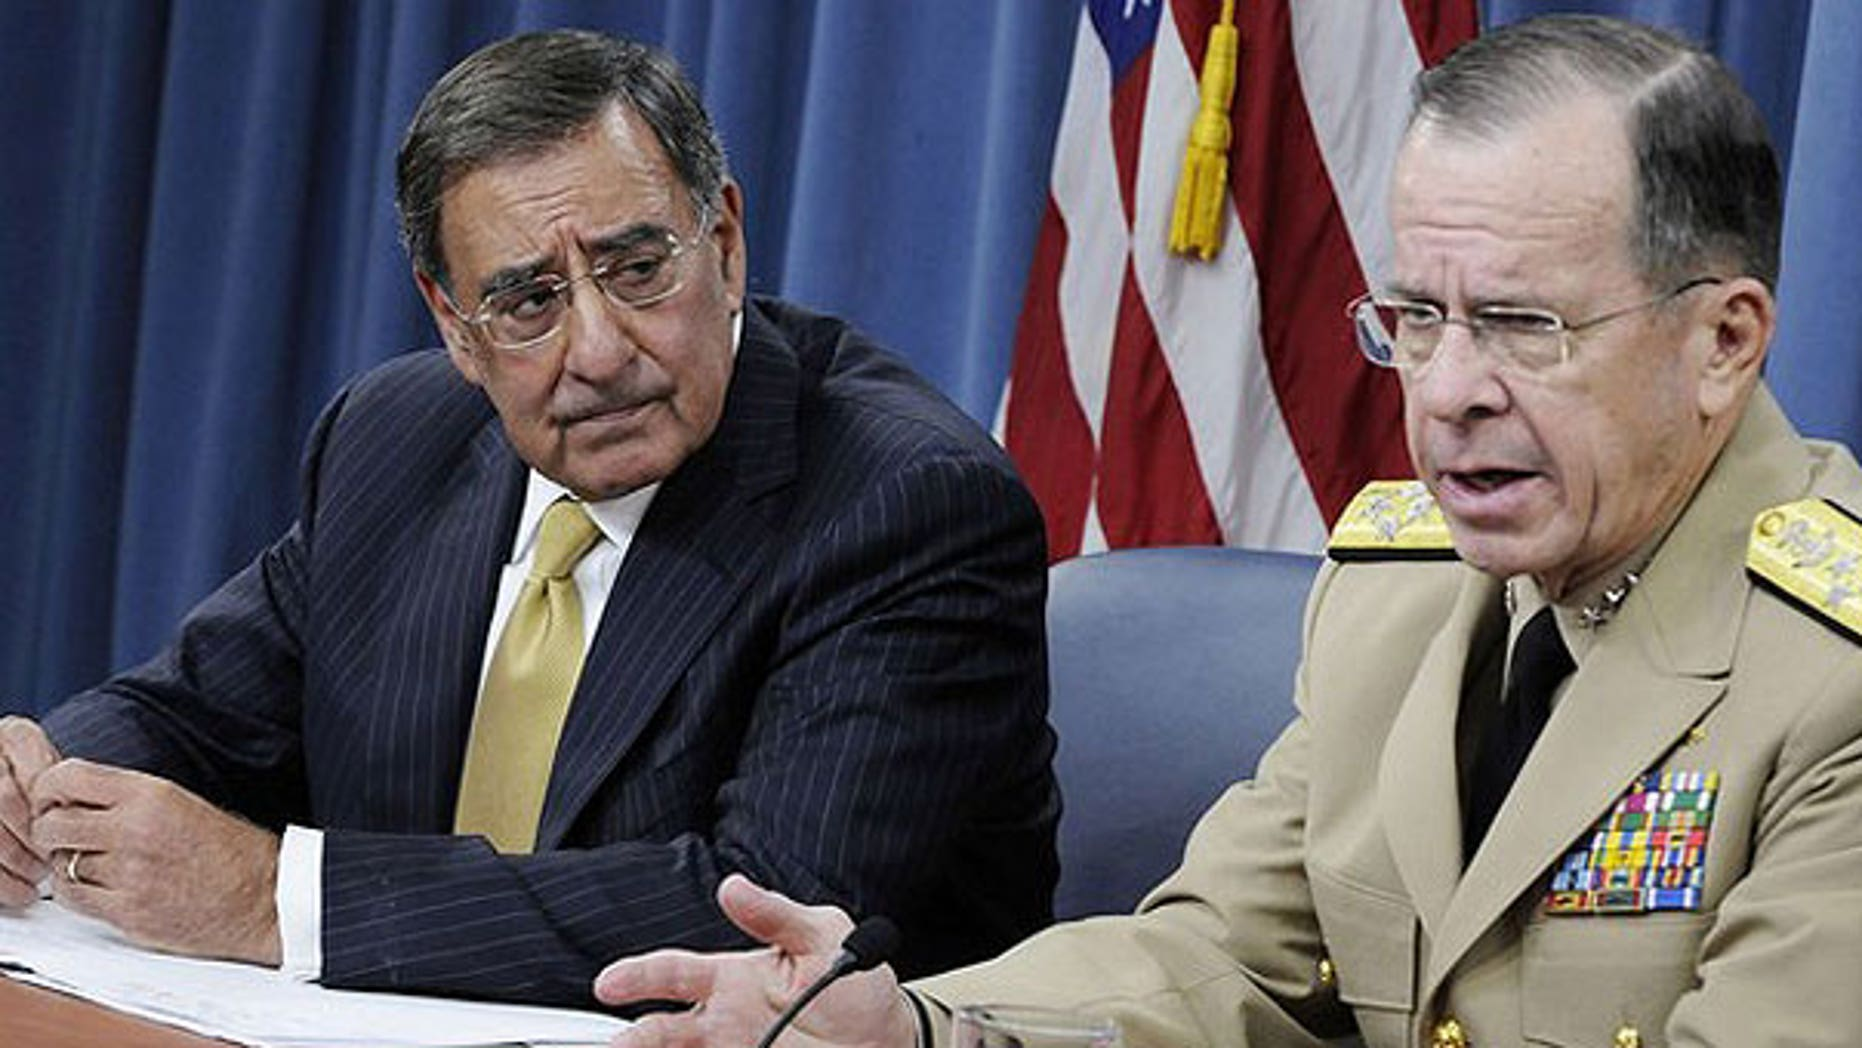 August 4: U.S. Defense Secretary Leon Panetta and Chairman of the Joint Chiefs of Staff U.S. Navy Admiral Michael Mullen hold their first joint news conference at the Pentagon in Washington, D.C.